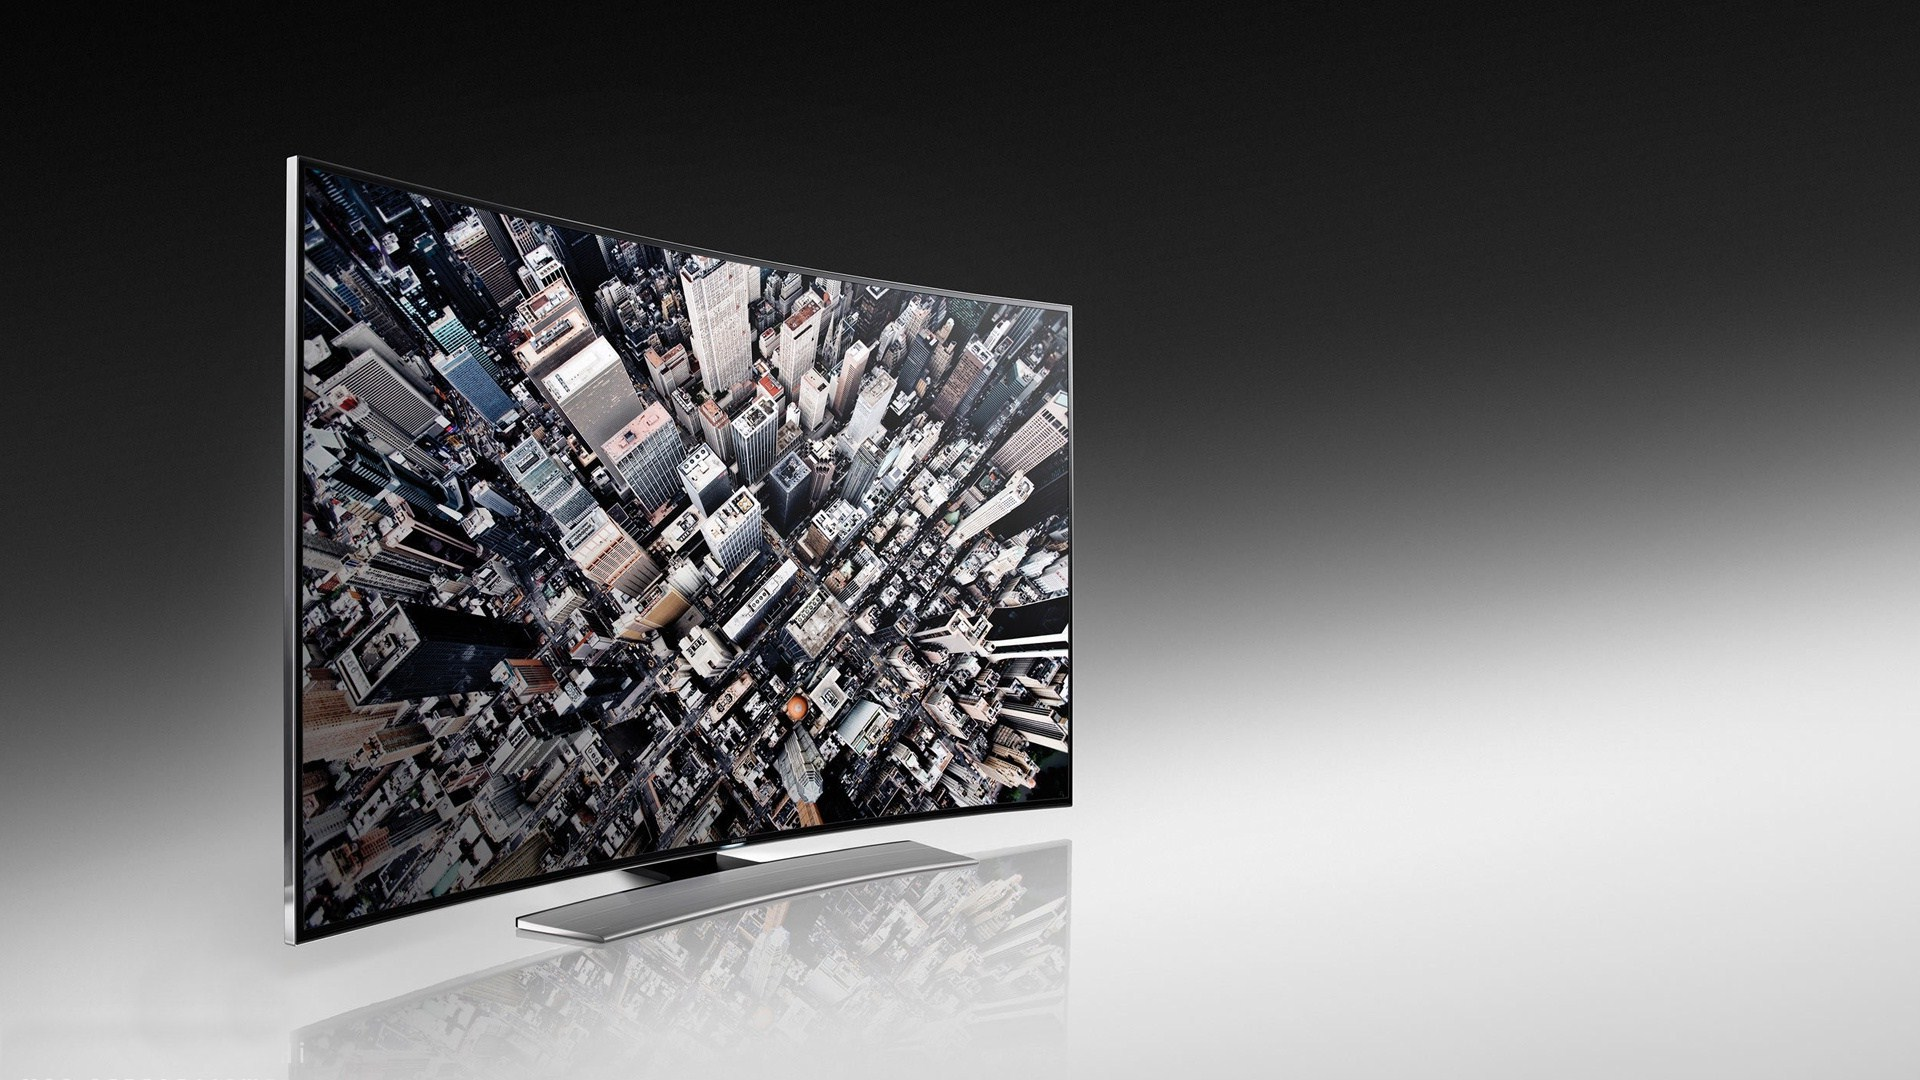 philips fernseher curved